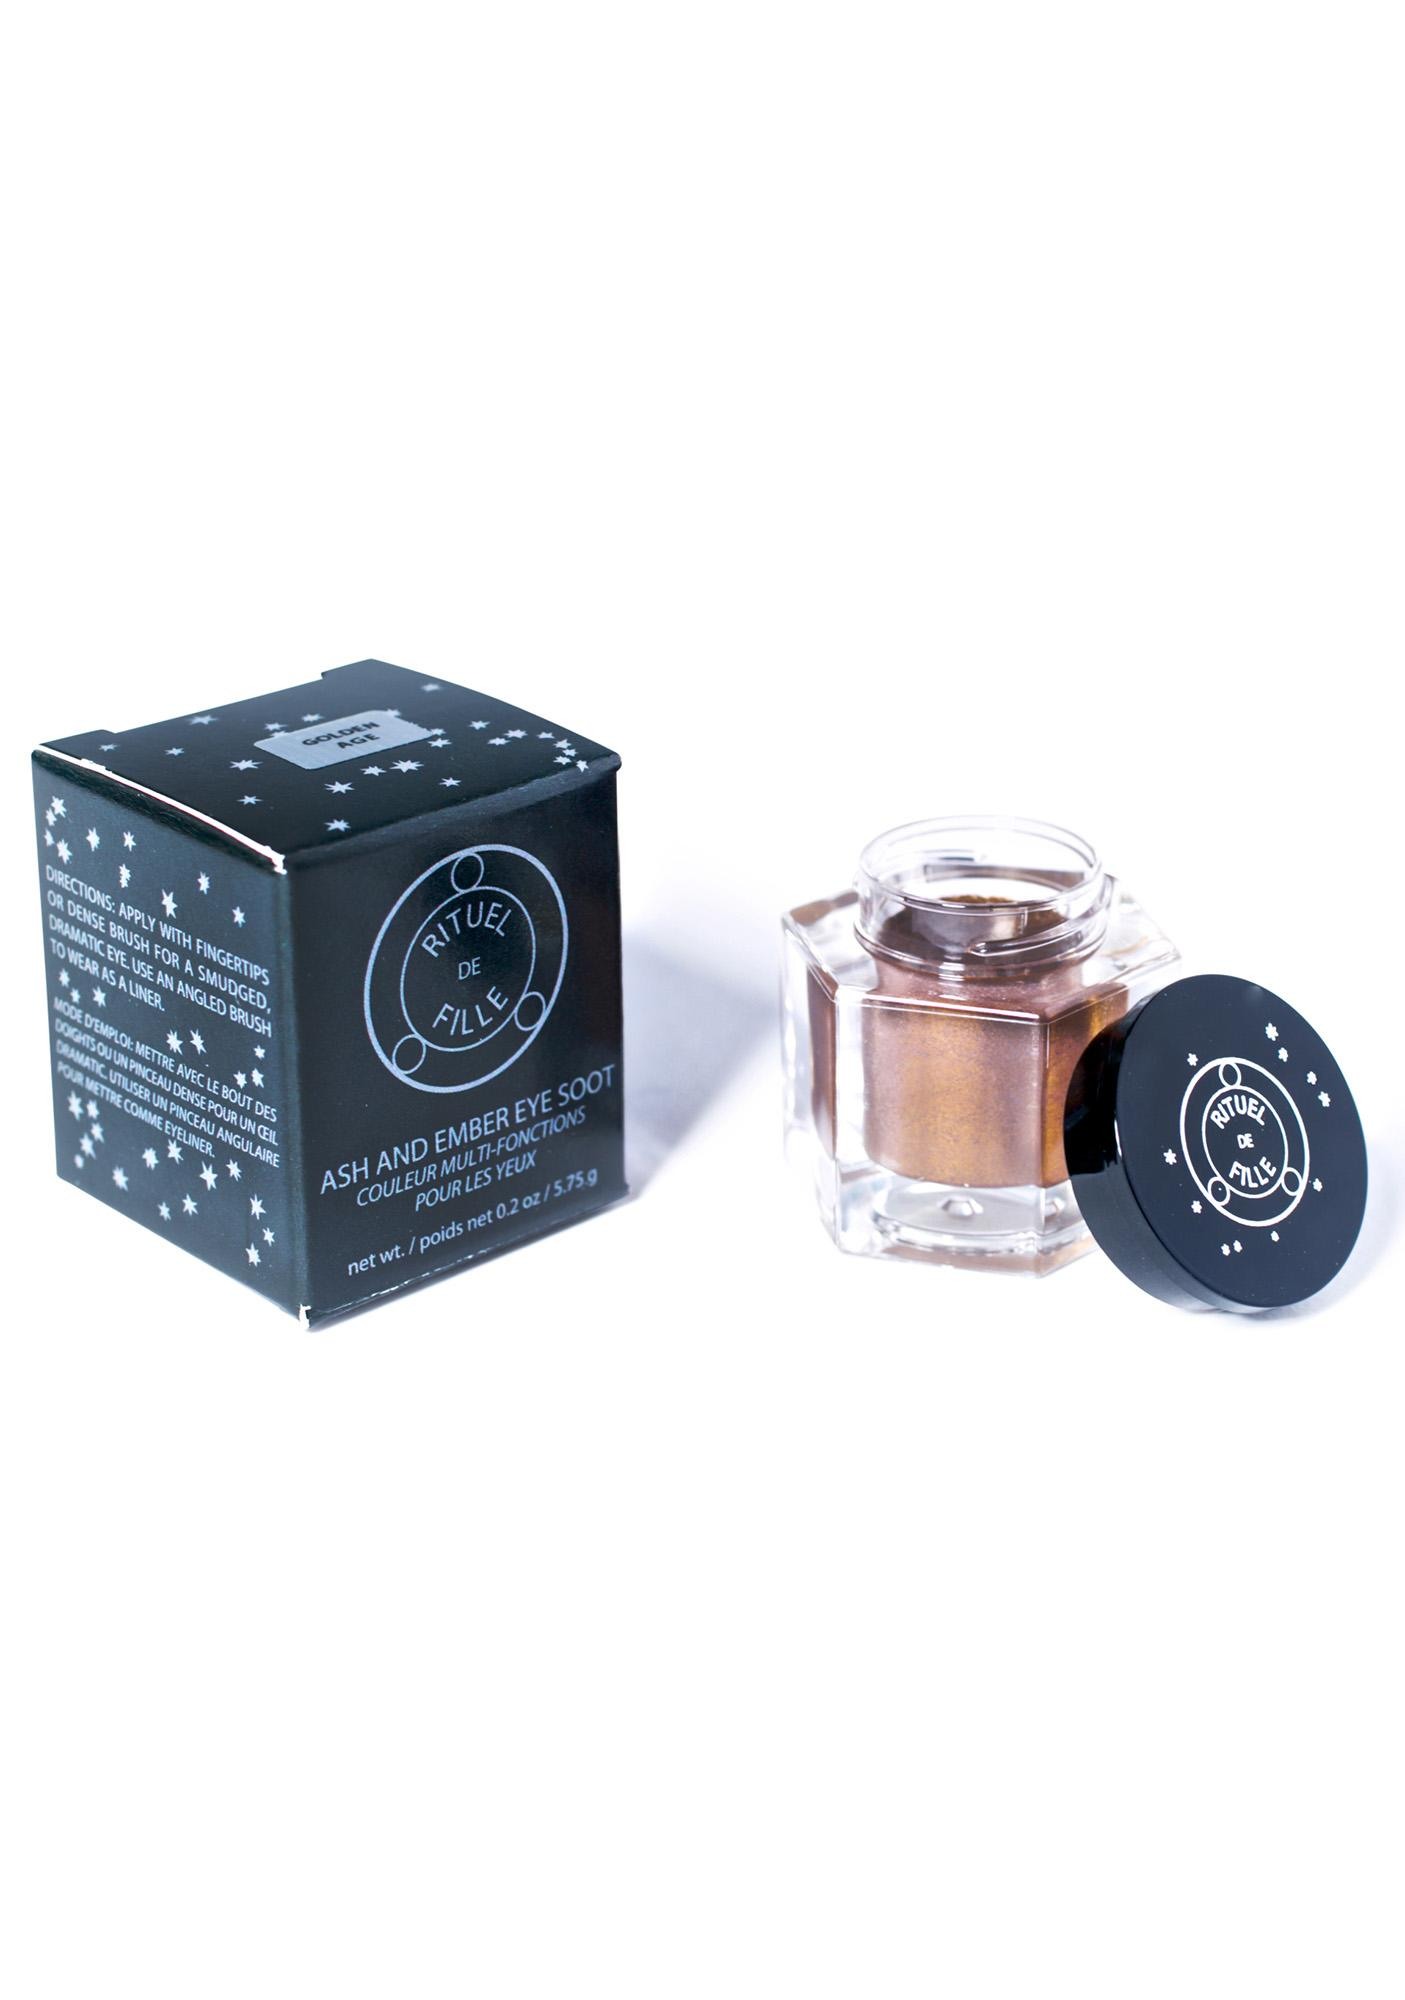 Rituel De Fille Goldenage Ash and Ember Eye Soot